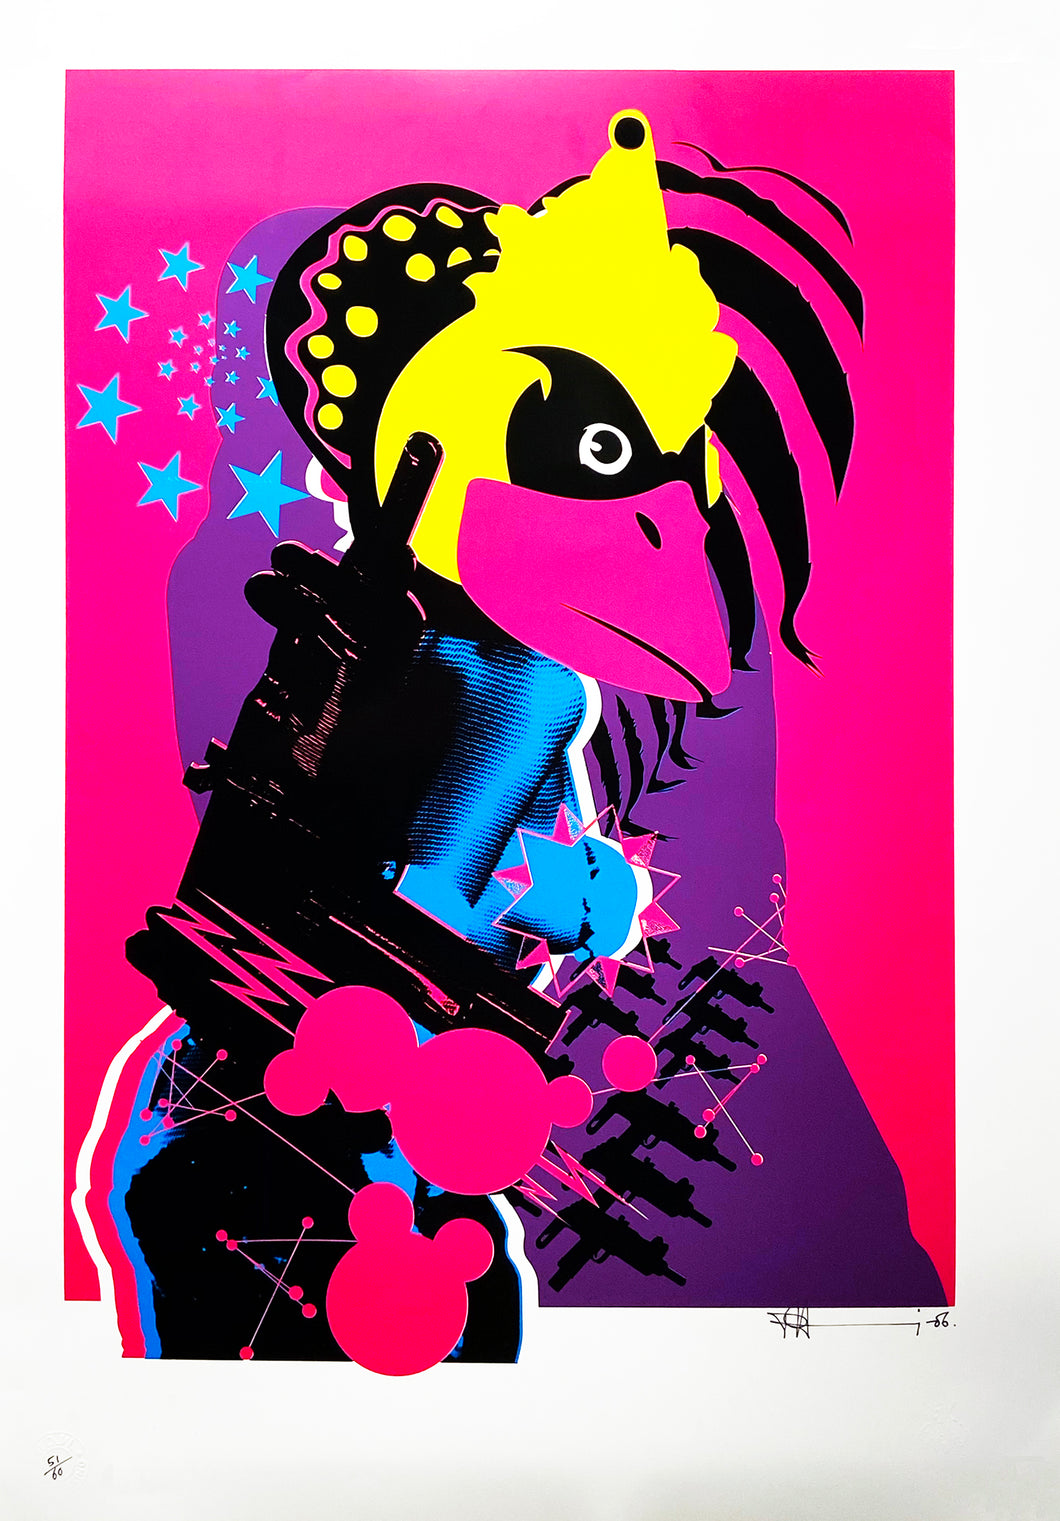 PAUL INSECT 'Sex Toy 1' Screen Print